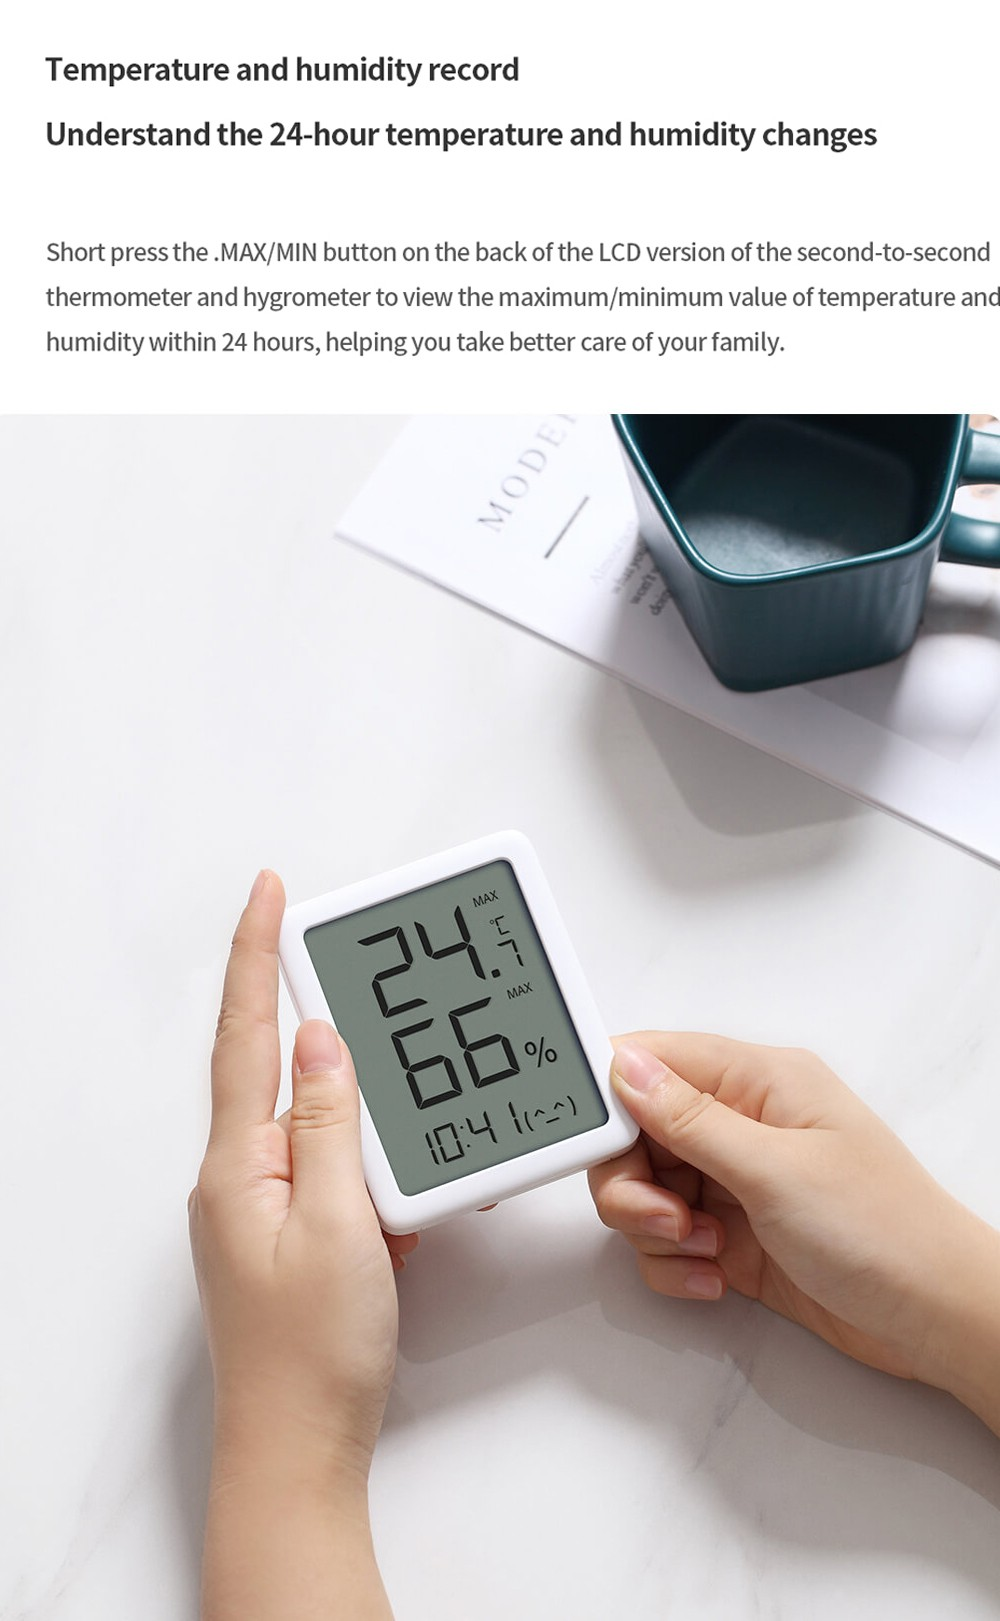 MHO-C601 Thermometer and Hygrometer LCD Edition from Youpin - White